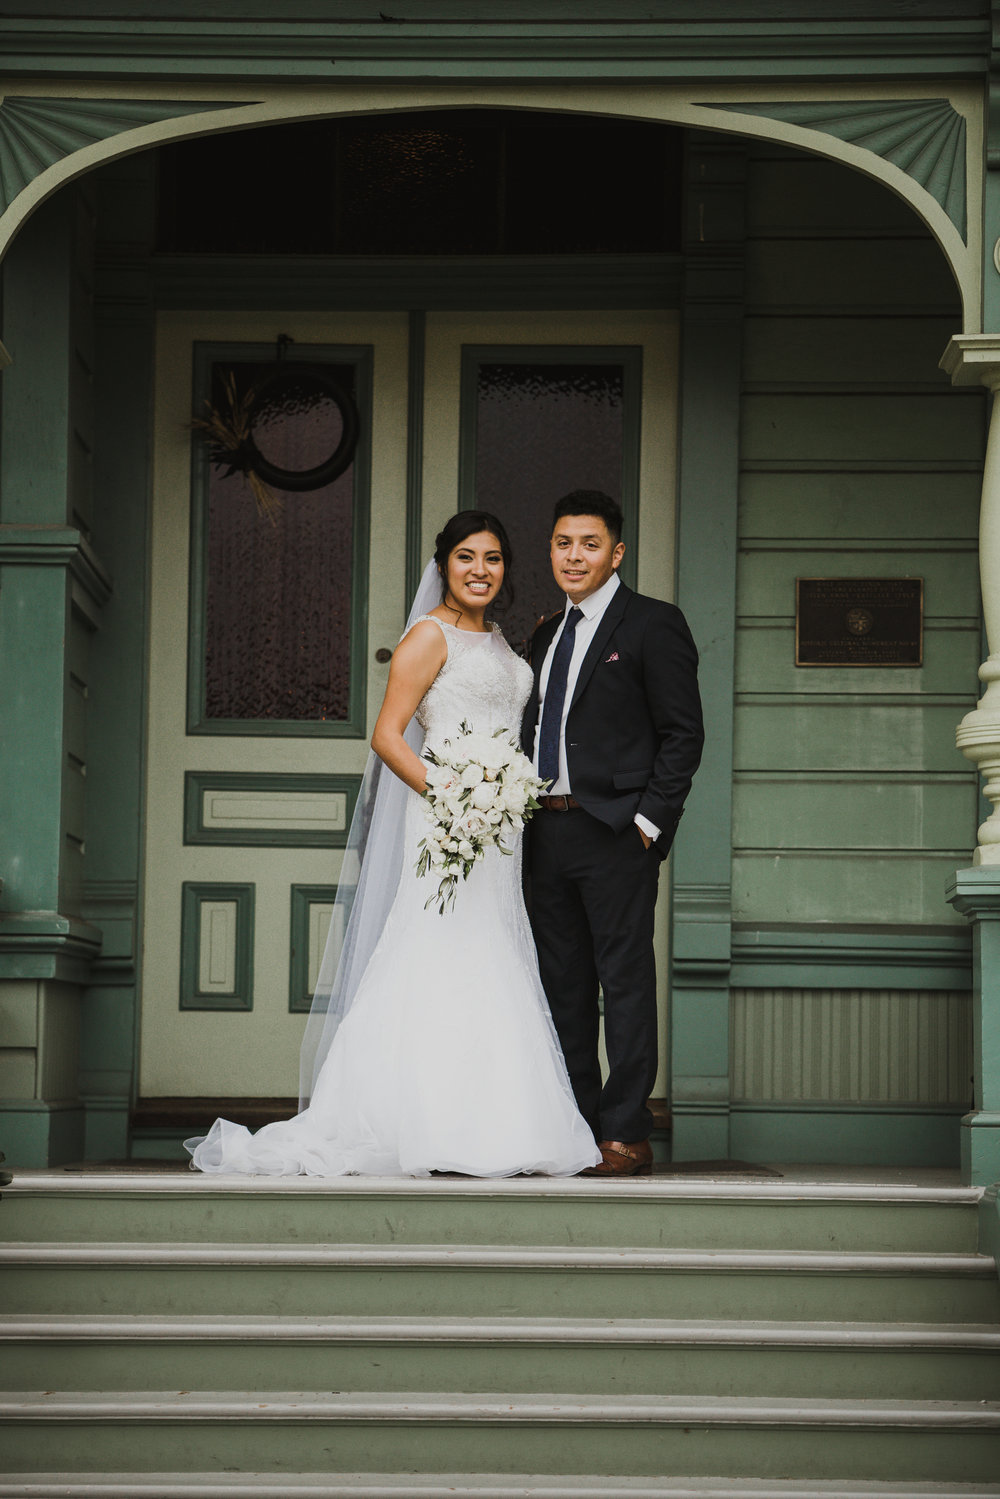 ©Isaiah-&-Taylor-Photography---Heritage-Square-Museum-Wedding,-Los-Angeles--46.jpg